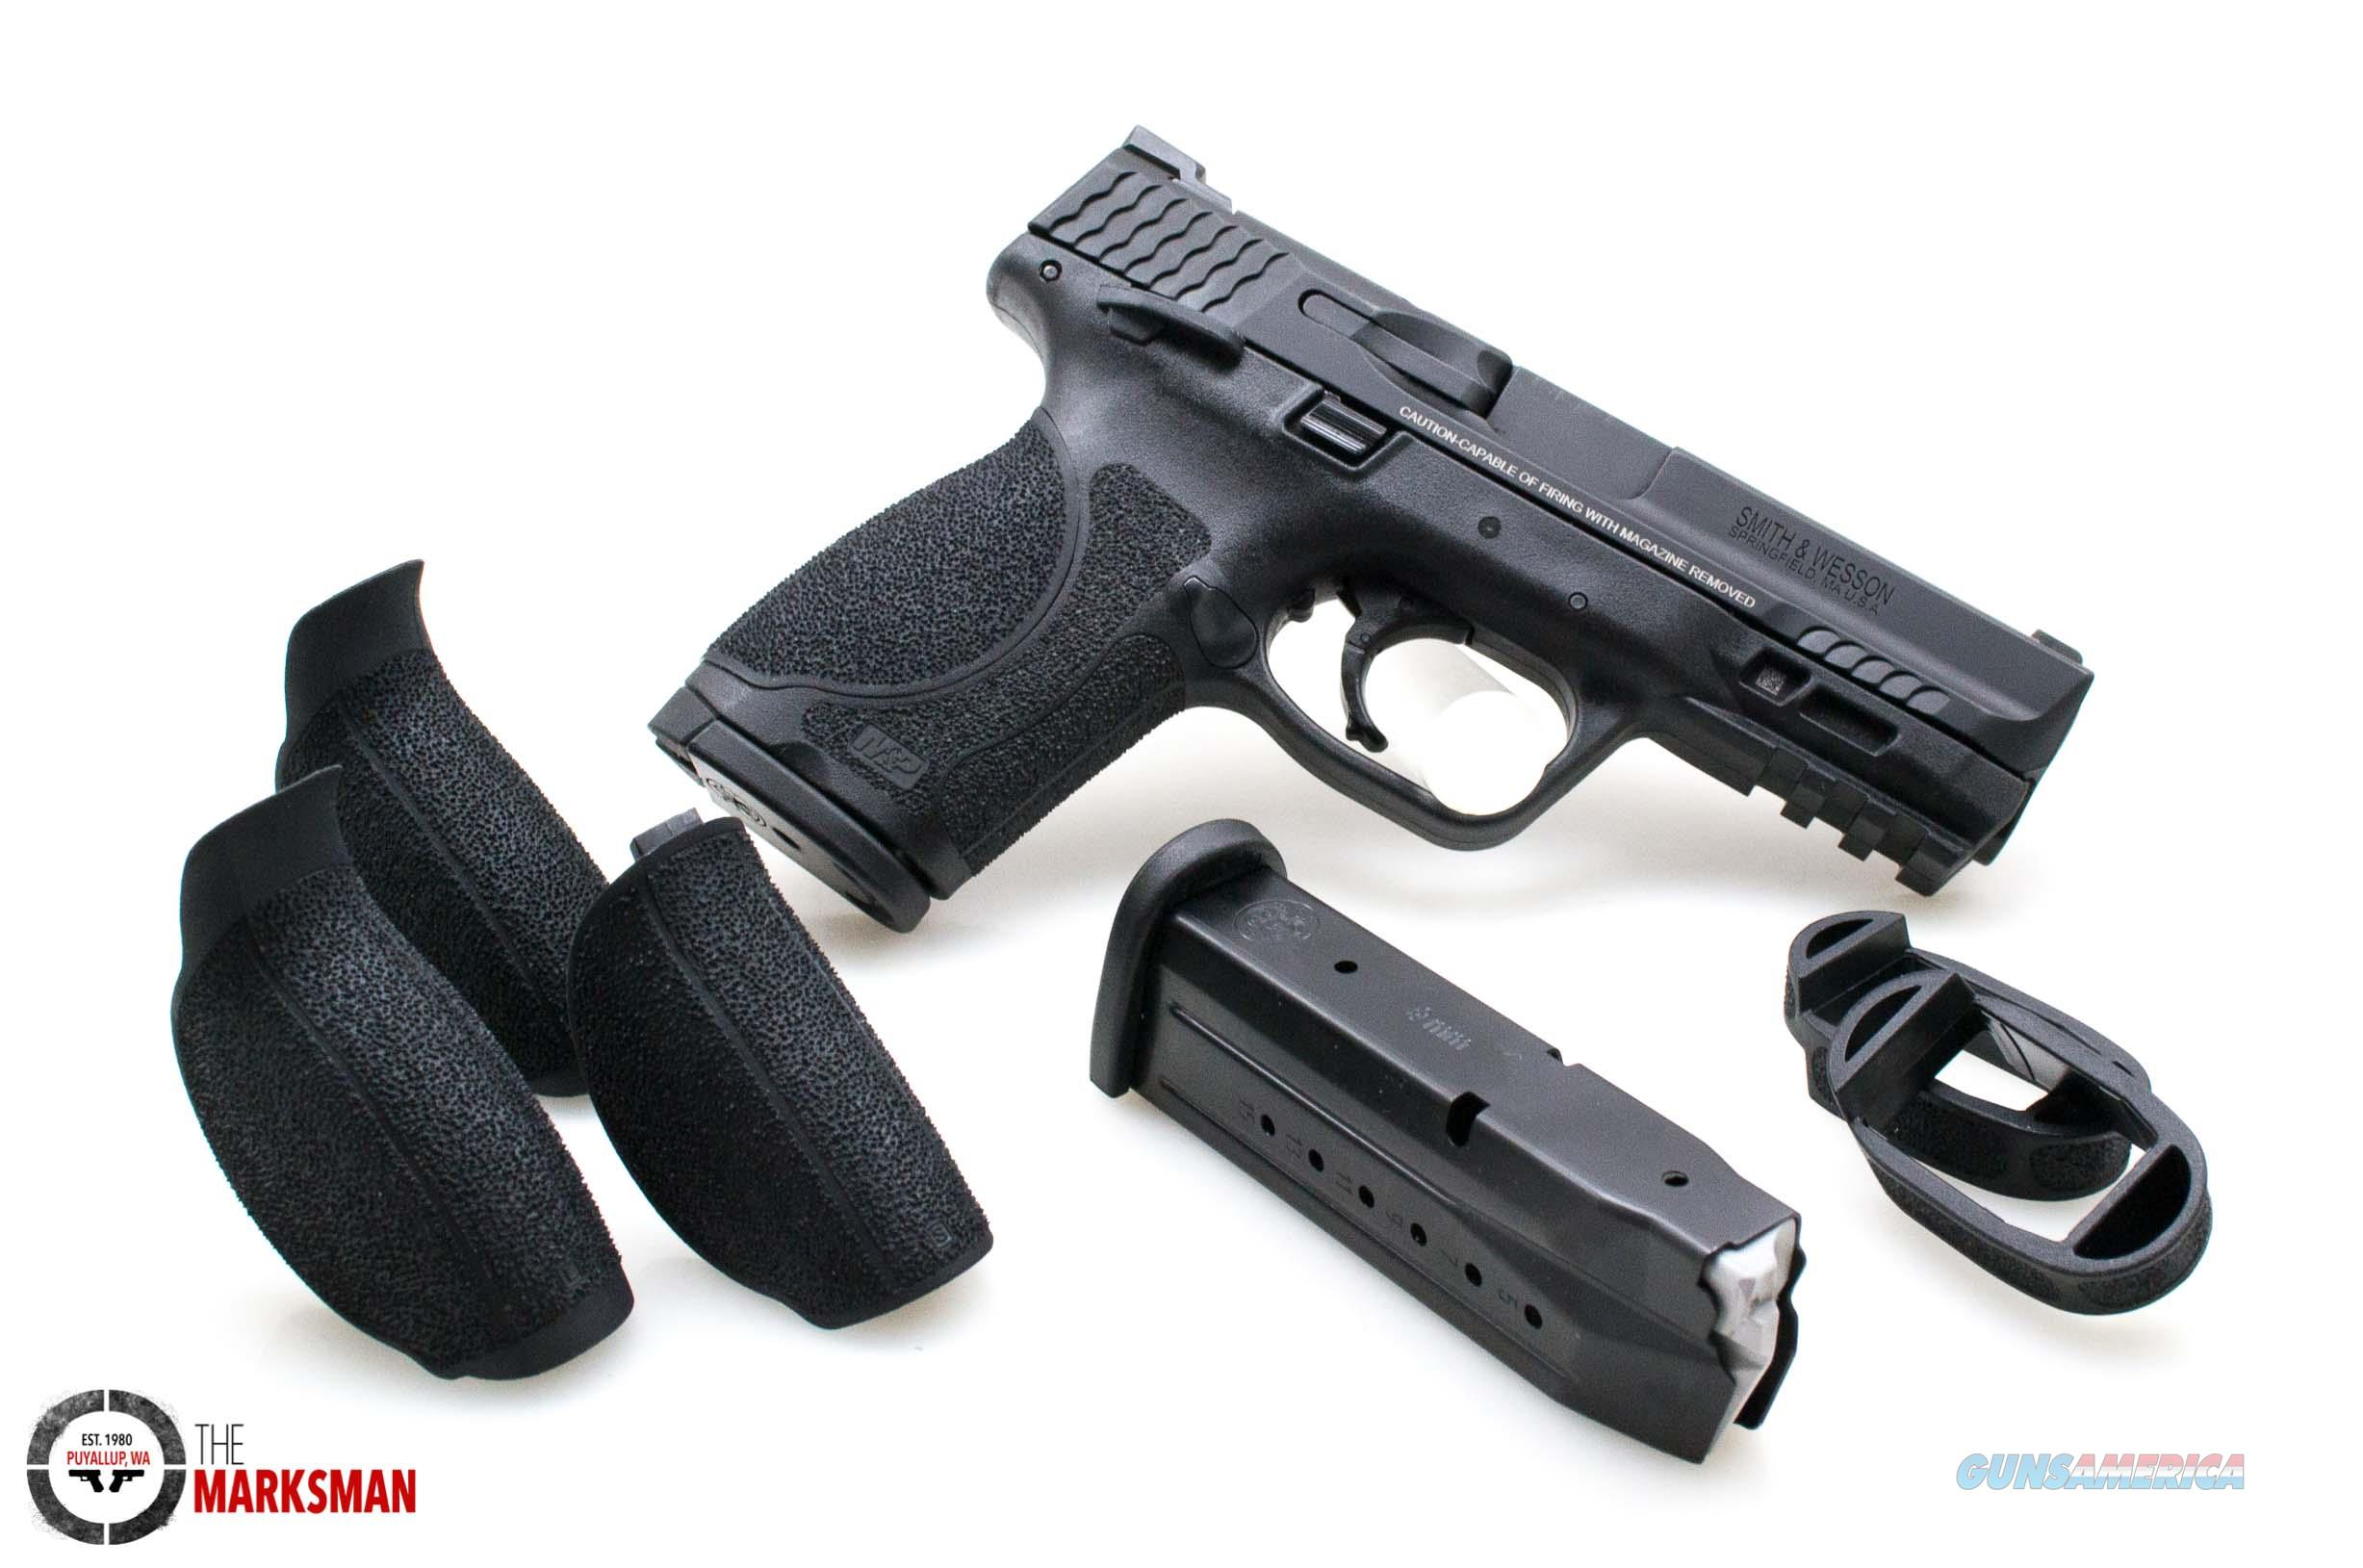 Smith and Wesson M&P9 2.0 Compact, 9mm w/ Thumb Safety NEW  Guns > Pistols > Smith & Wesson Pistols - Autos > Polymer Frame